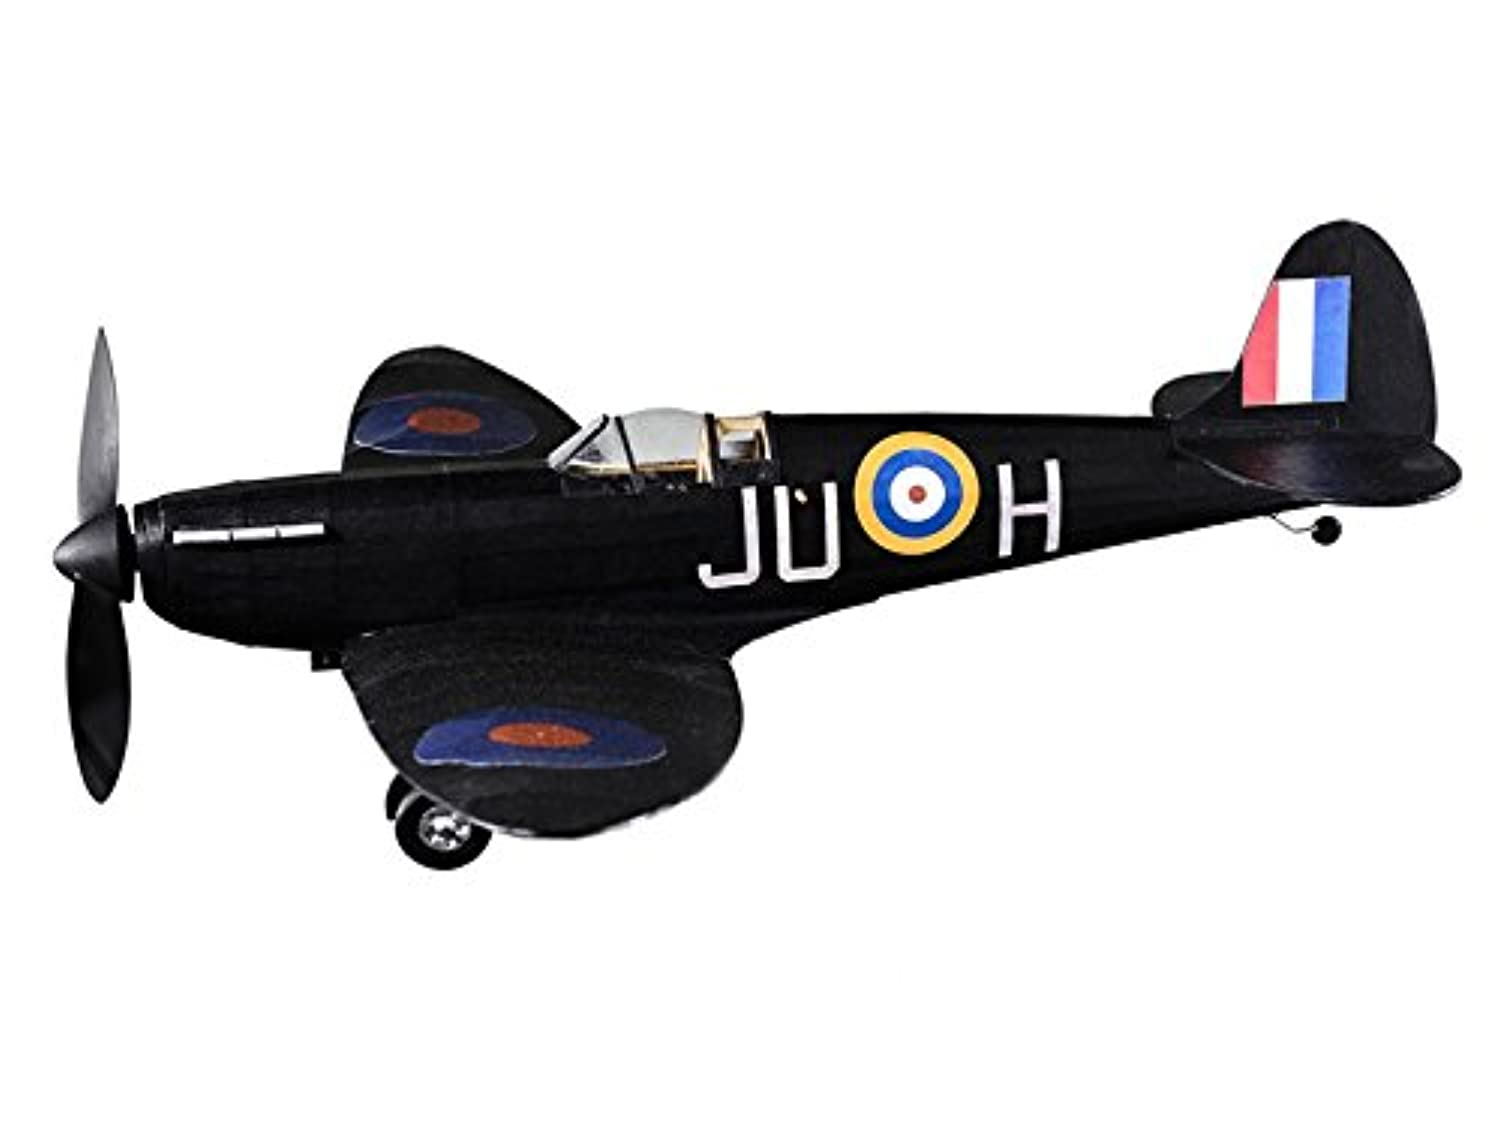 Supermarine Spitfire Nightfighter complete vintage model rubber-powered balsa wood aircraft kit that really flies